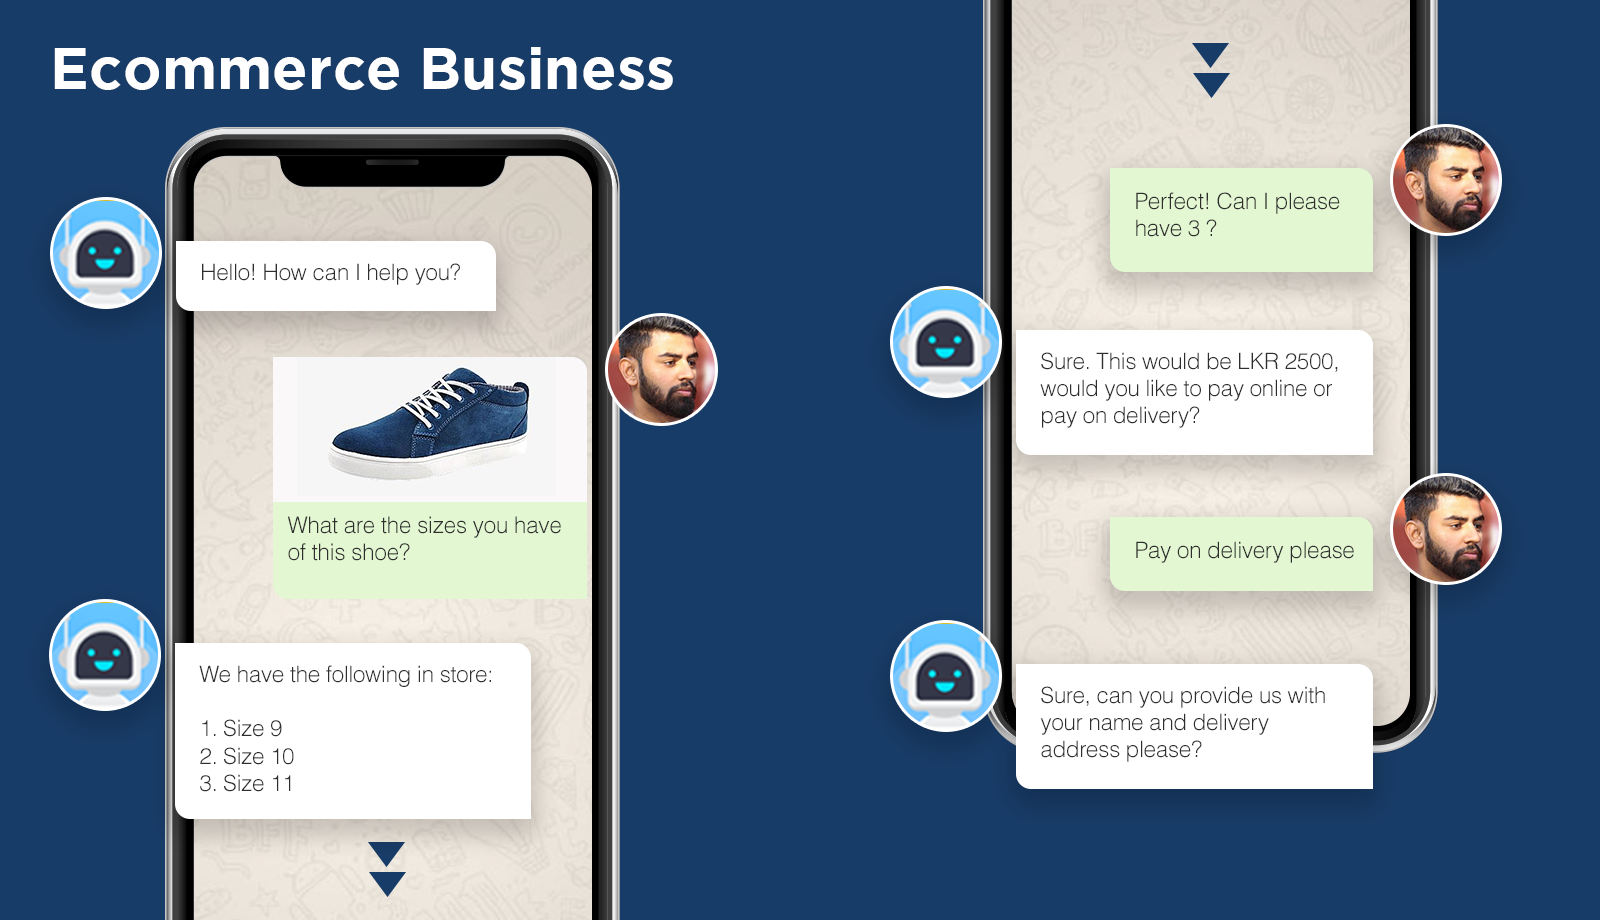 chatbot conversation about purchasing a shoe - Antyra Solutions